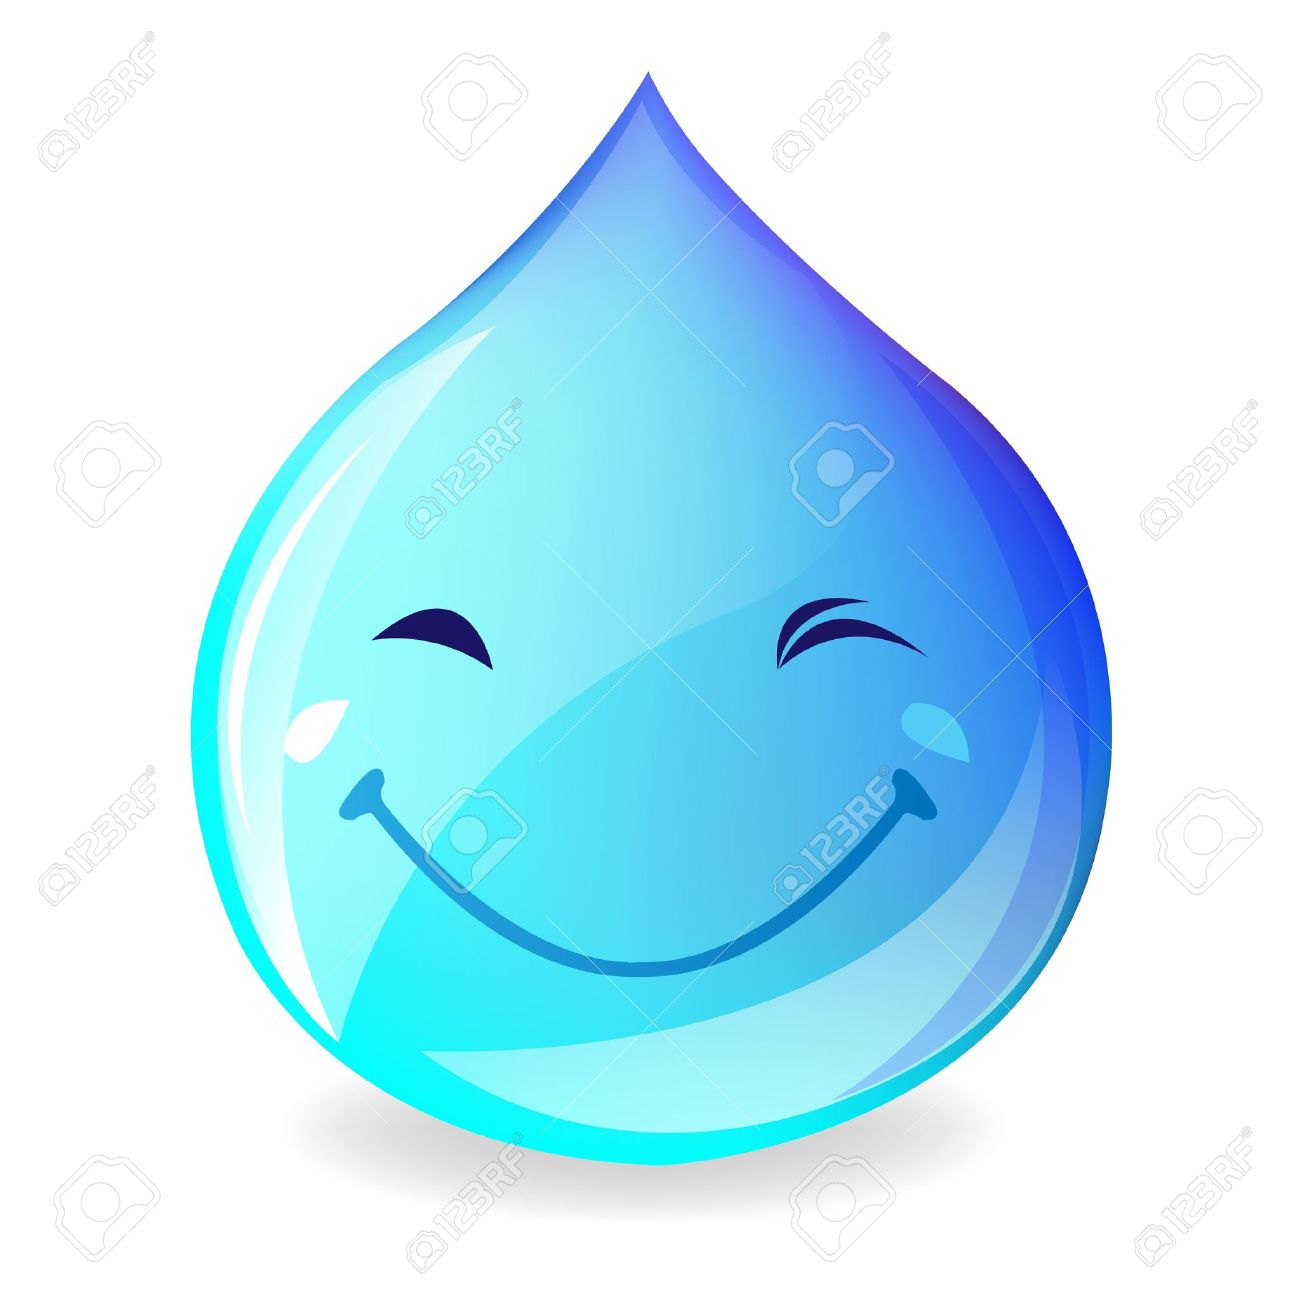 Water droplet with girl face clipart.